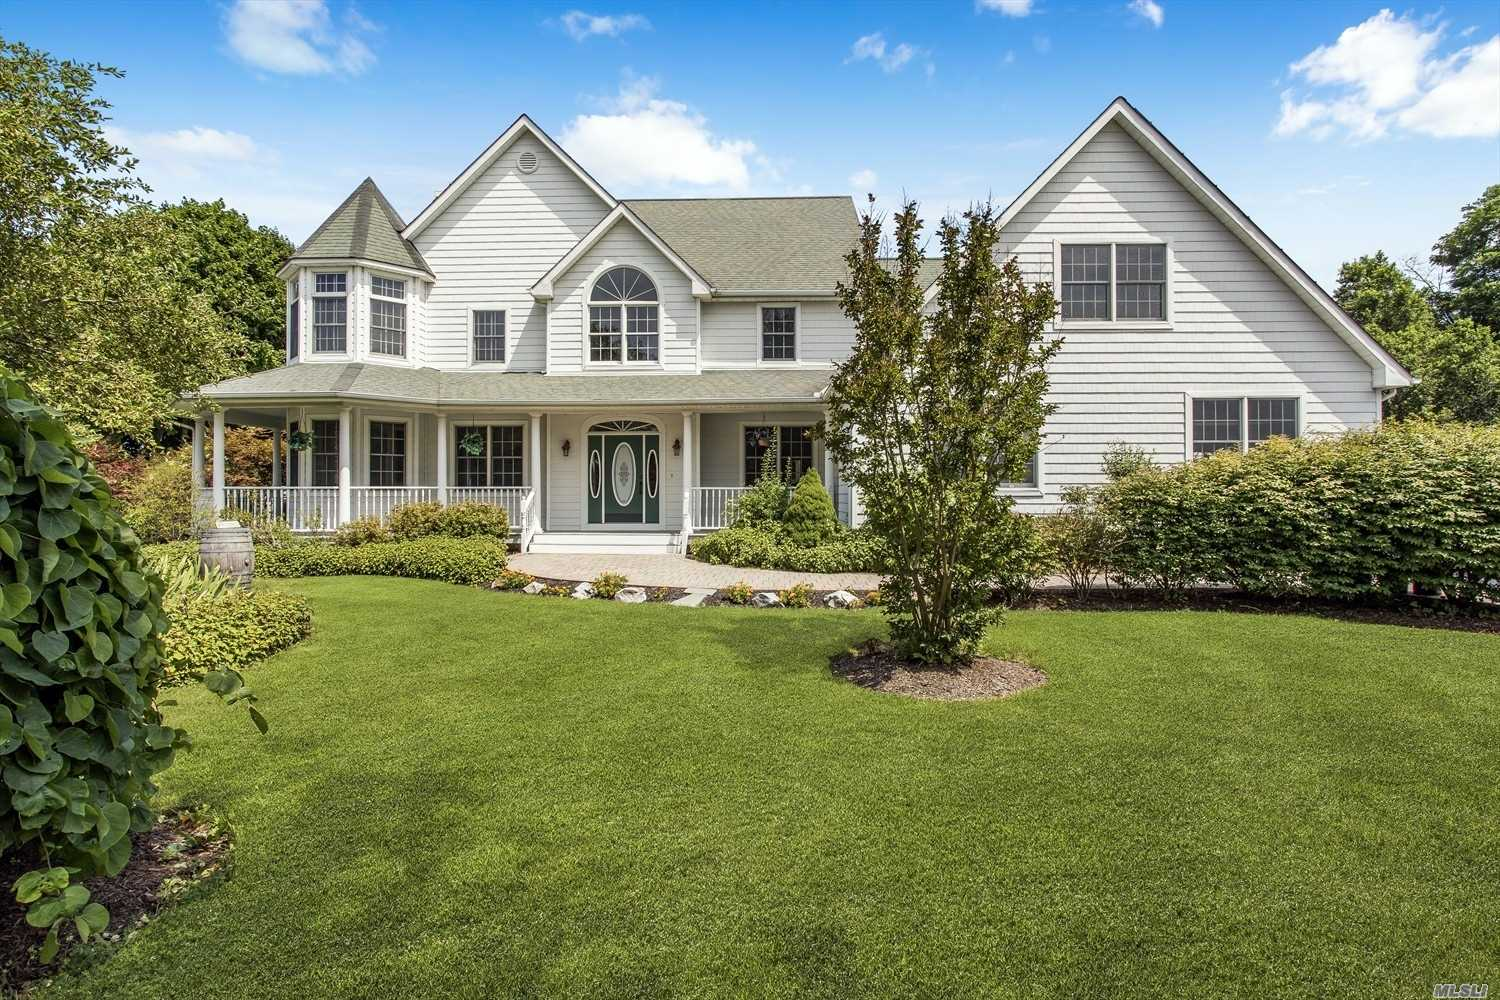 345 Richmond Ln - Peconic, New York